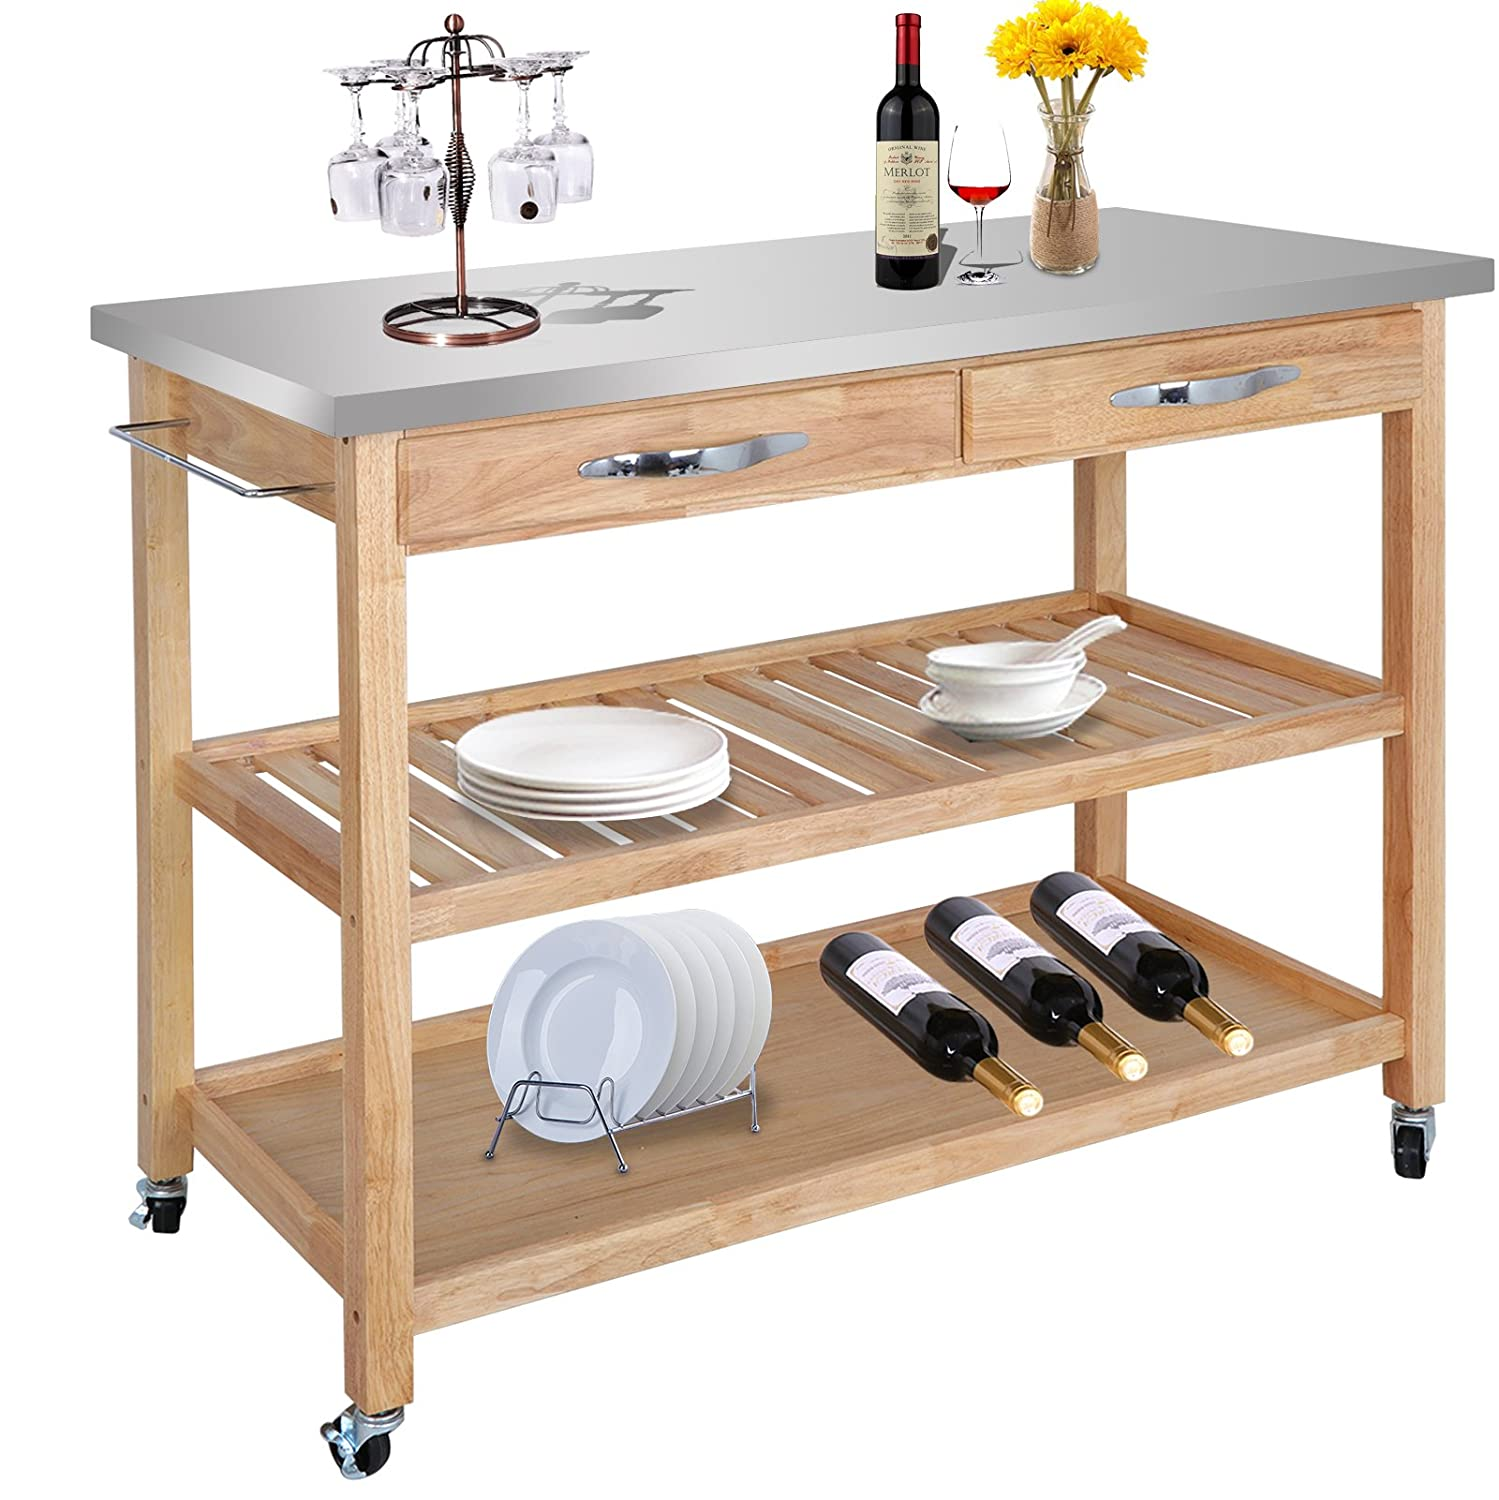 ZENY Natural Wood Kitchen Cart Rolling Kitchen Island Utility Serving Cart  w/Stainless Steel Countertop, Drawer, Shelves & Cabinet for Storage